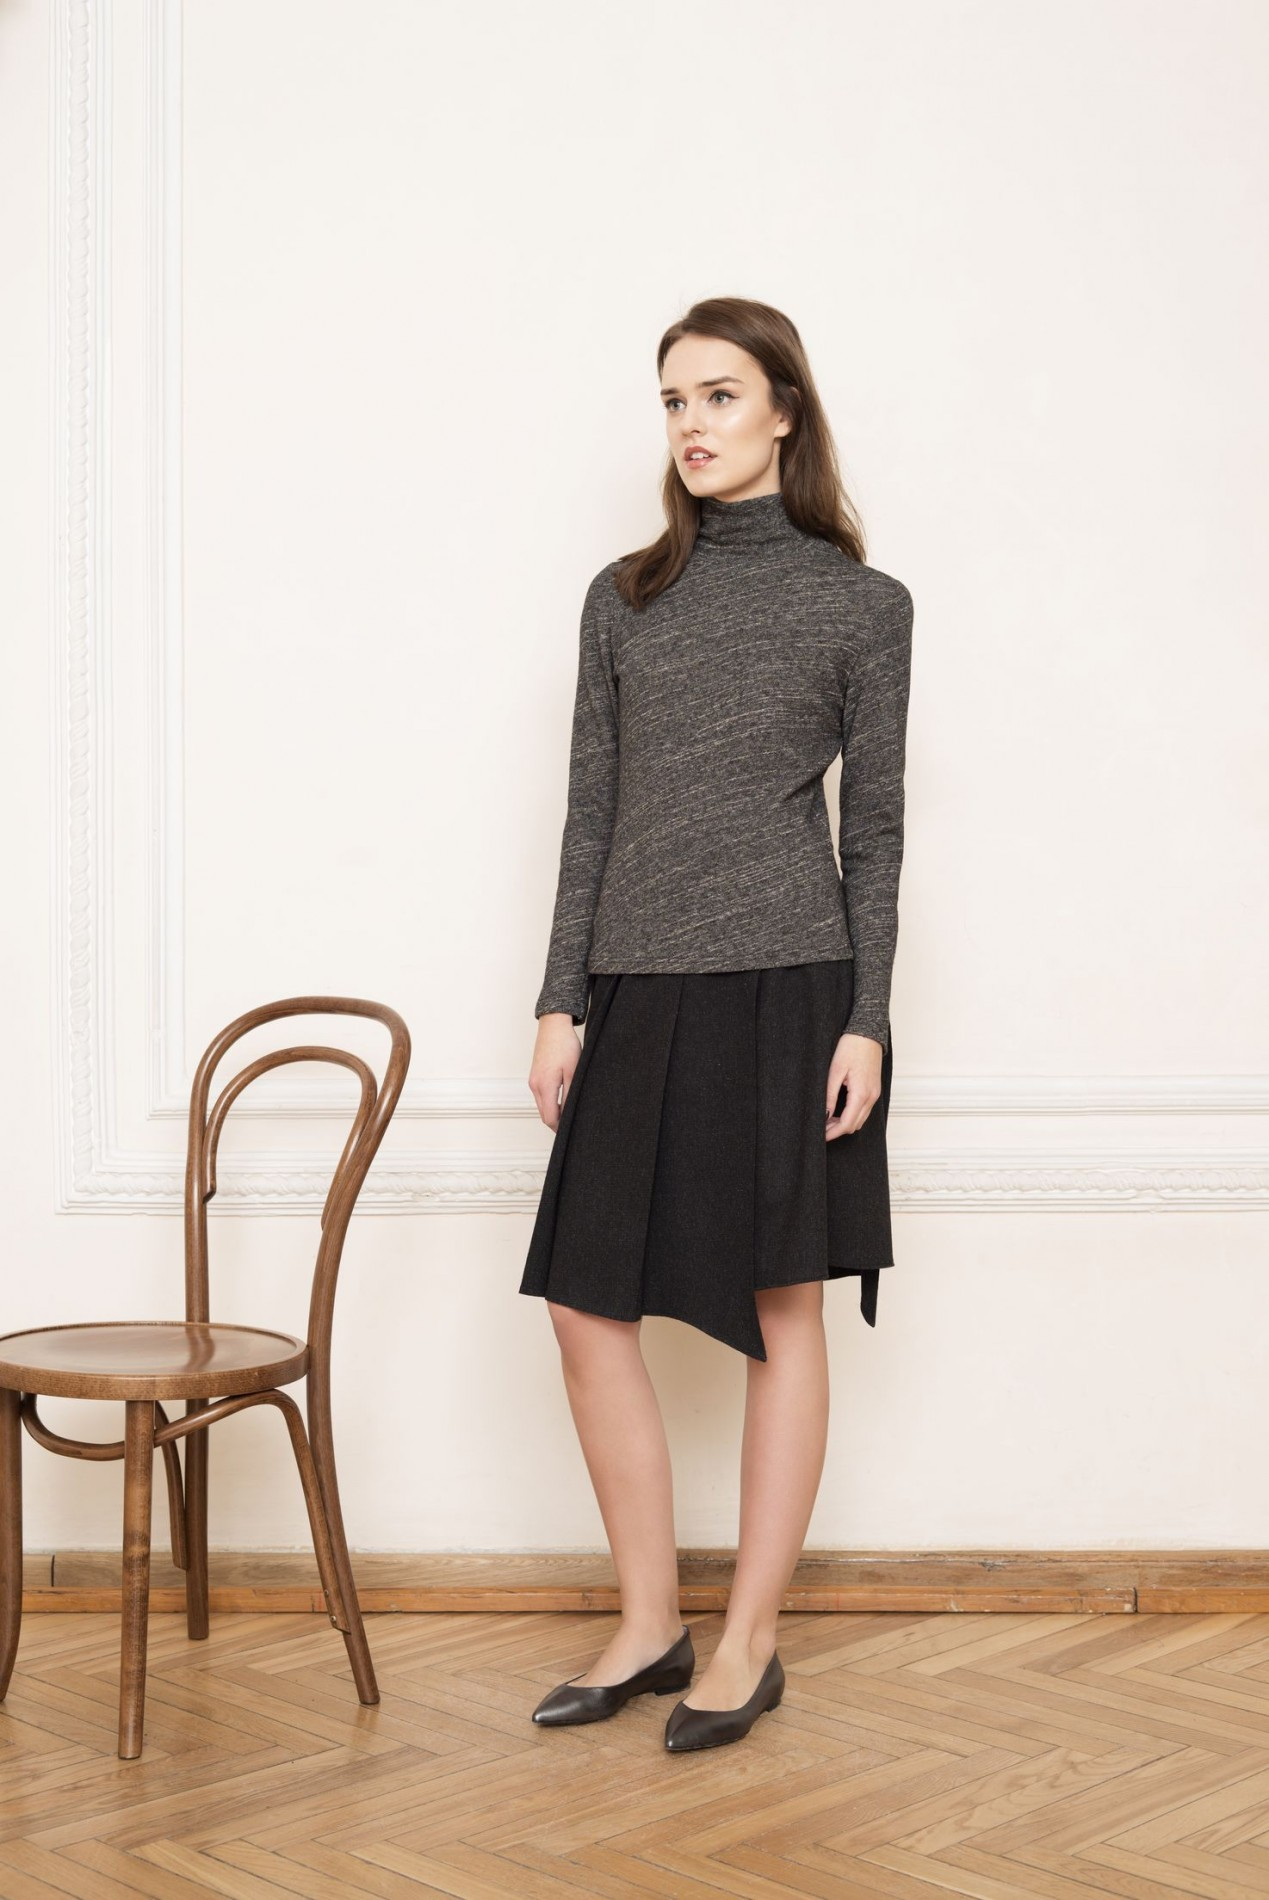 ELBRUS Turtle-neck Blouse and ALPS Pleat Skirt